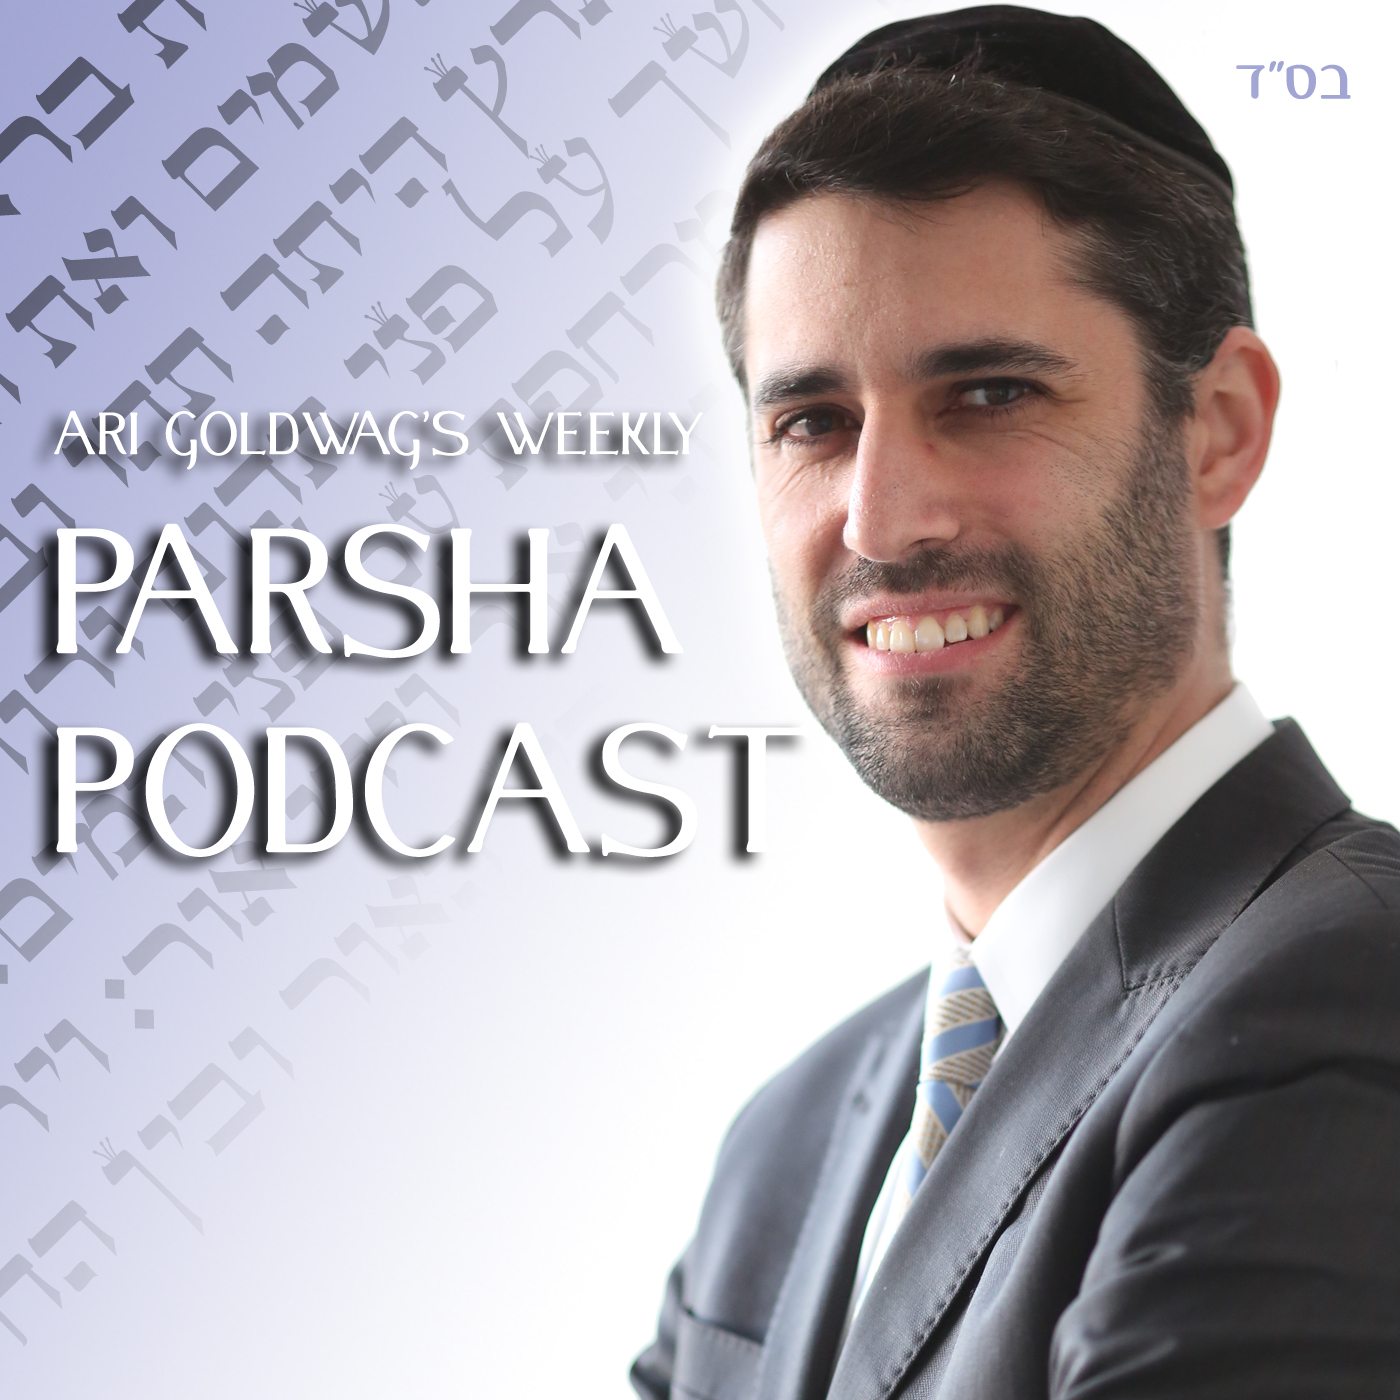 Parsha Podcast with Ari Goldwag